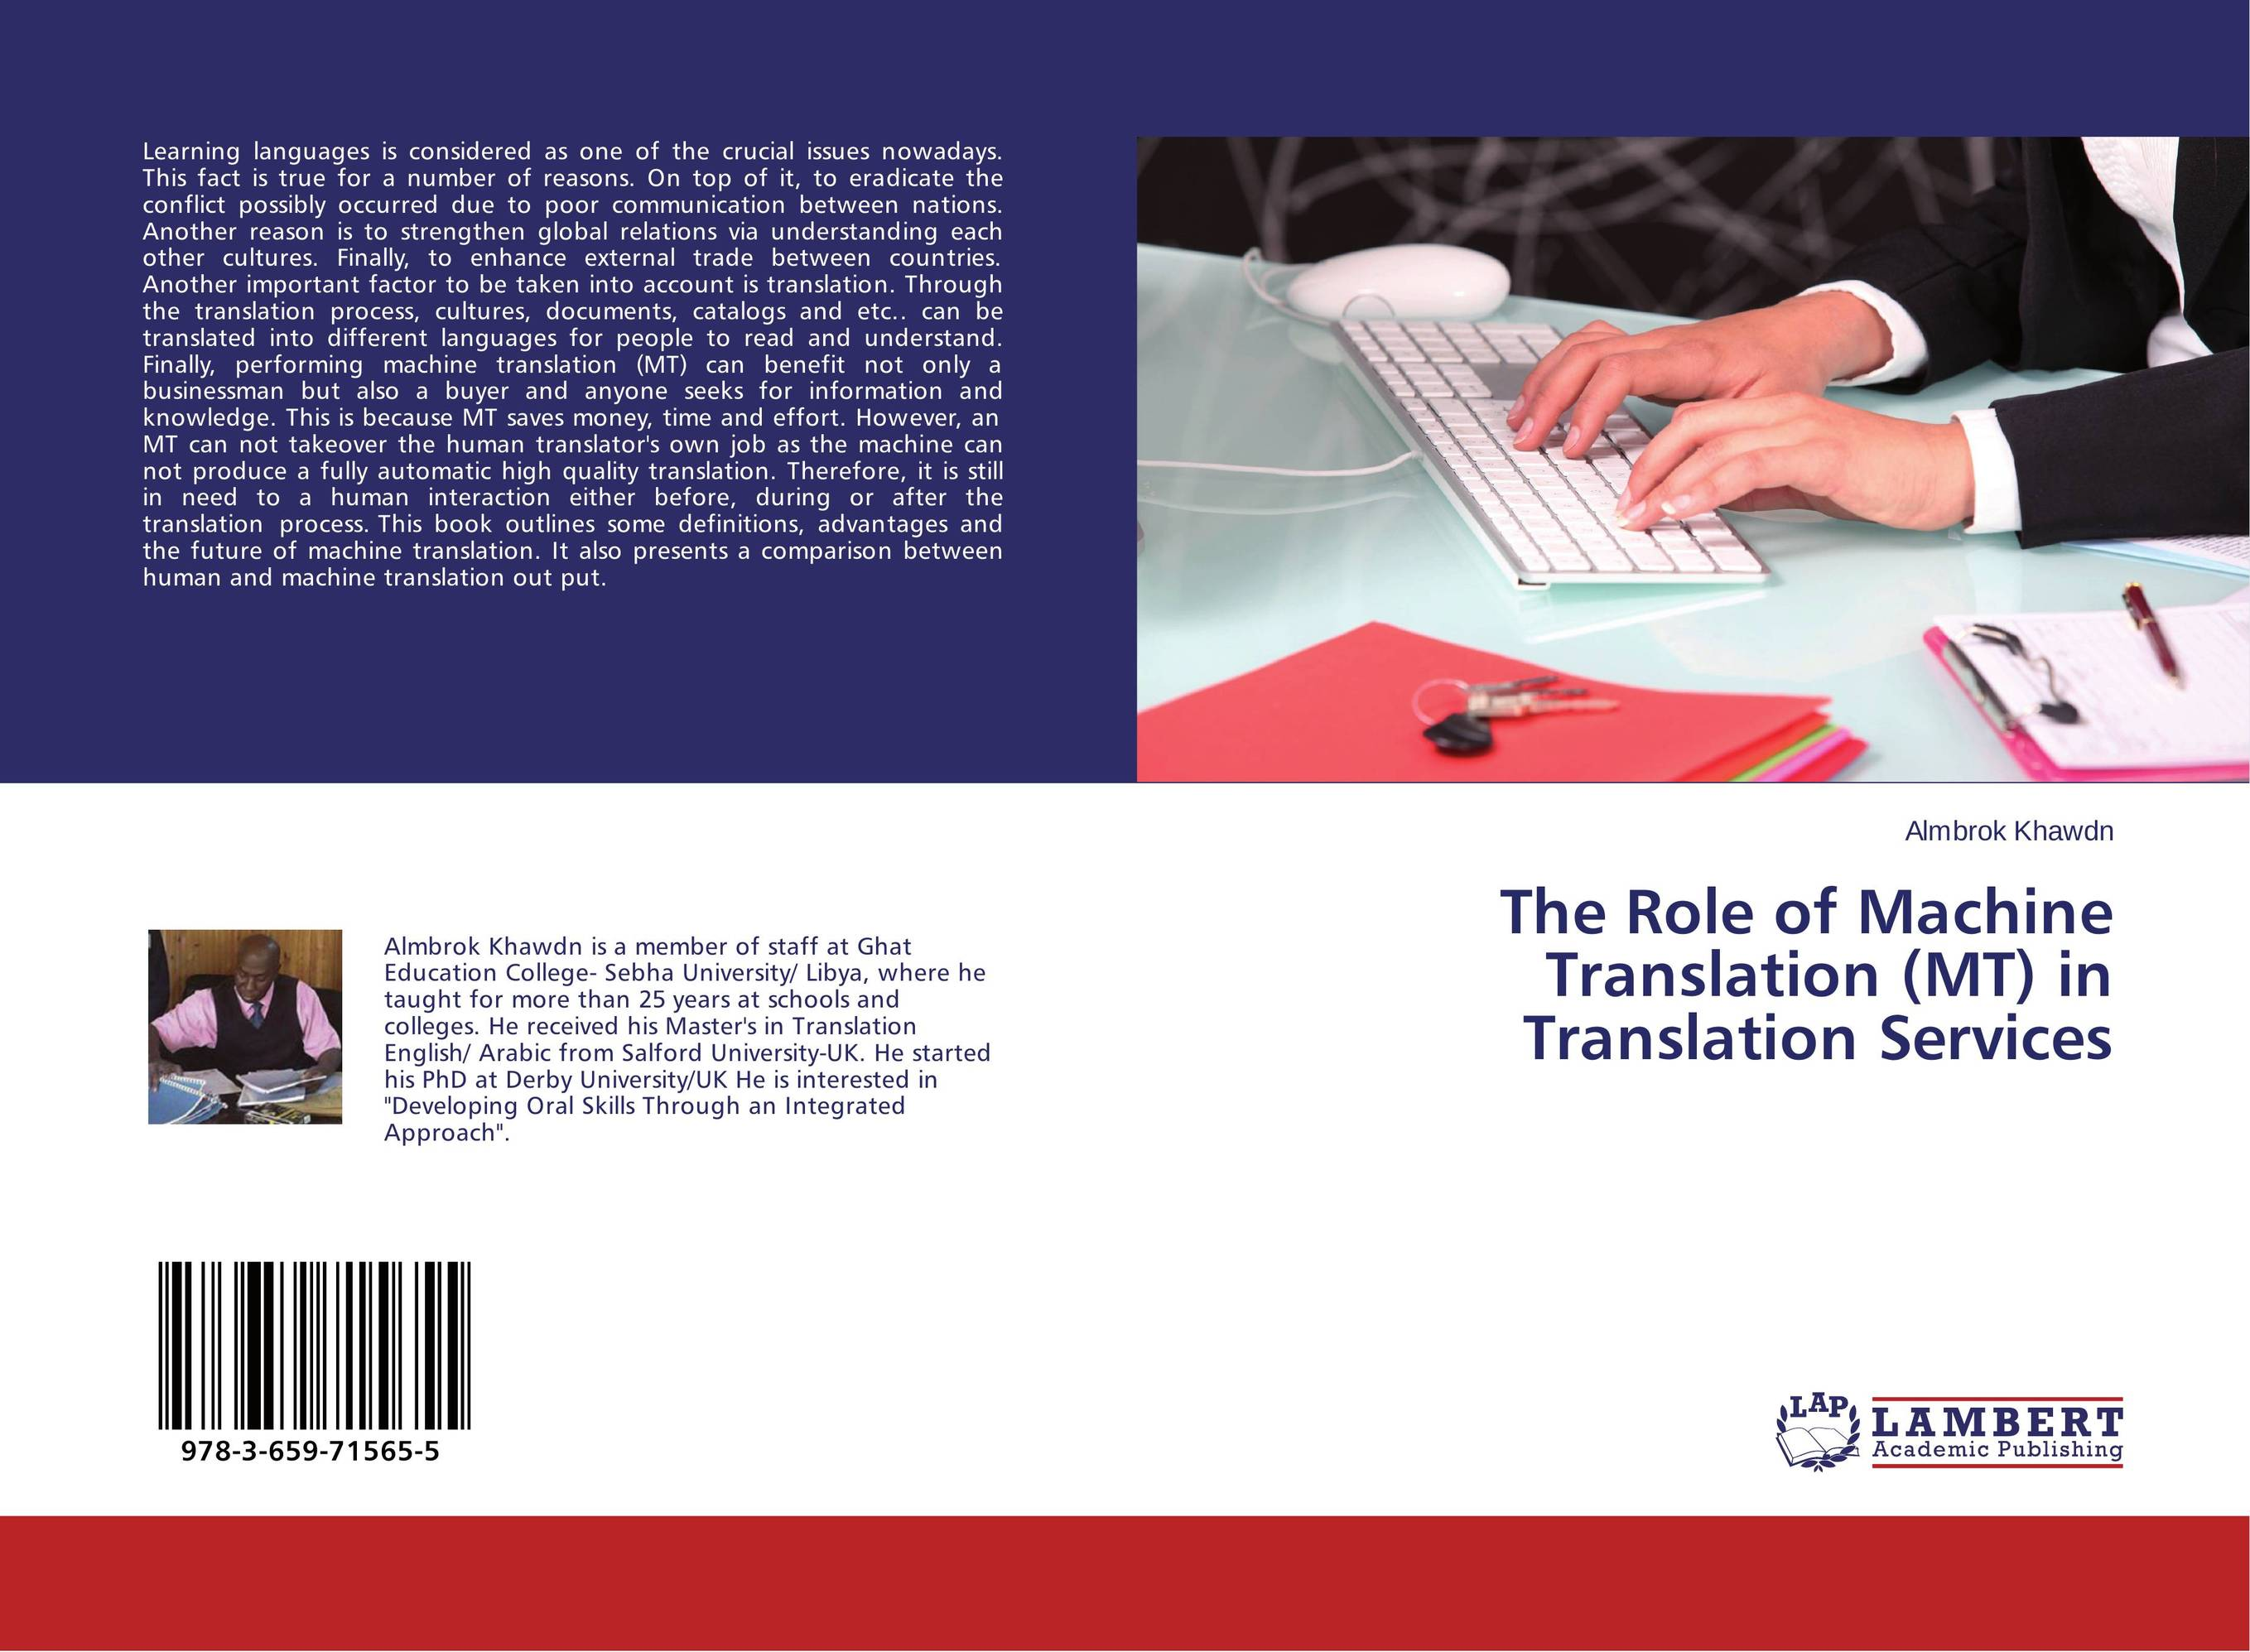 essay about machine translation Machine translation thesis importance of teachers in students life essay maintaining consistent grading translation machine thesis standards across many nation states.